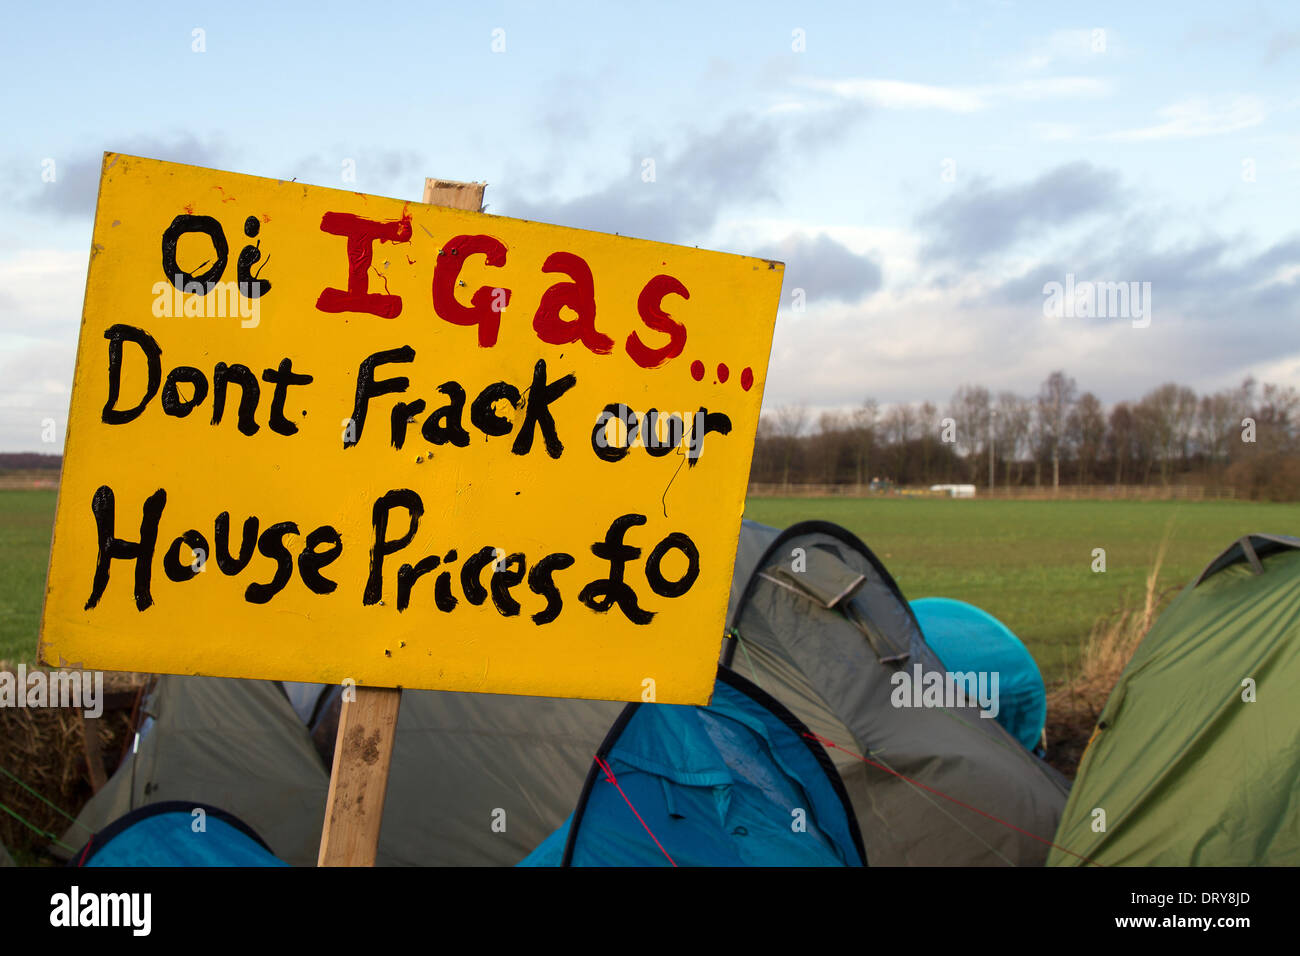 Manchester, Barton Moss, UK. 4th February, 2014.  IGAS Don't frack our House prices £0'  Protests at IGAS Drilling exploration Site, Greater Manchester Policing operation at Barton Moss Drilling Site as Cuadrilla, as one of the energy firms hoping to exploit the UK's shale gas resources, announces two new exploration sites in Lancashire. ... to drill and frack at two sites at Roseacre Wood and Little Plumpton. - Stock Image